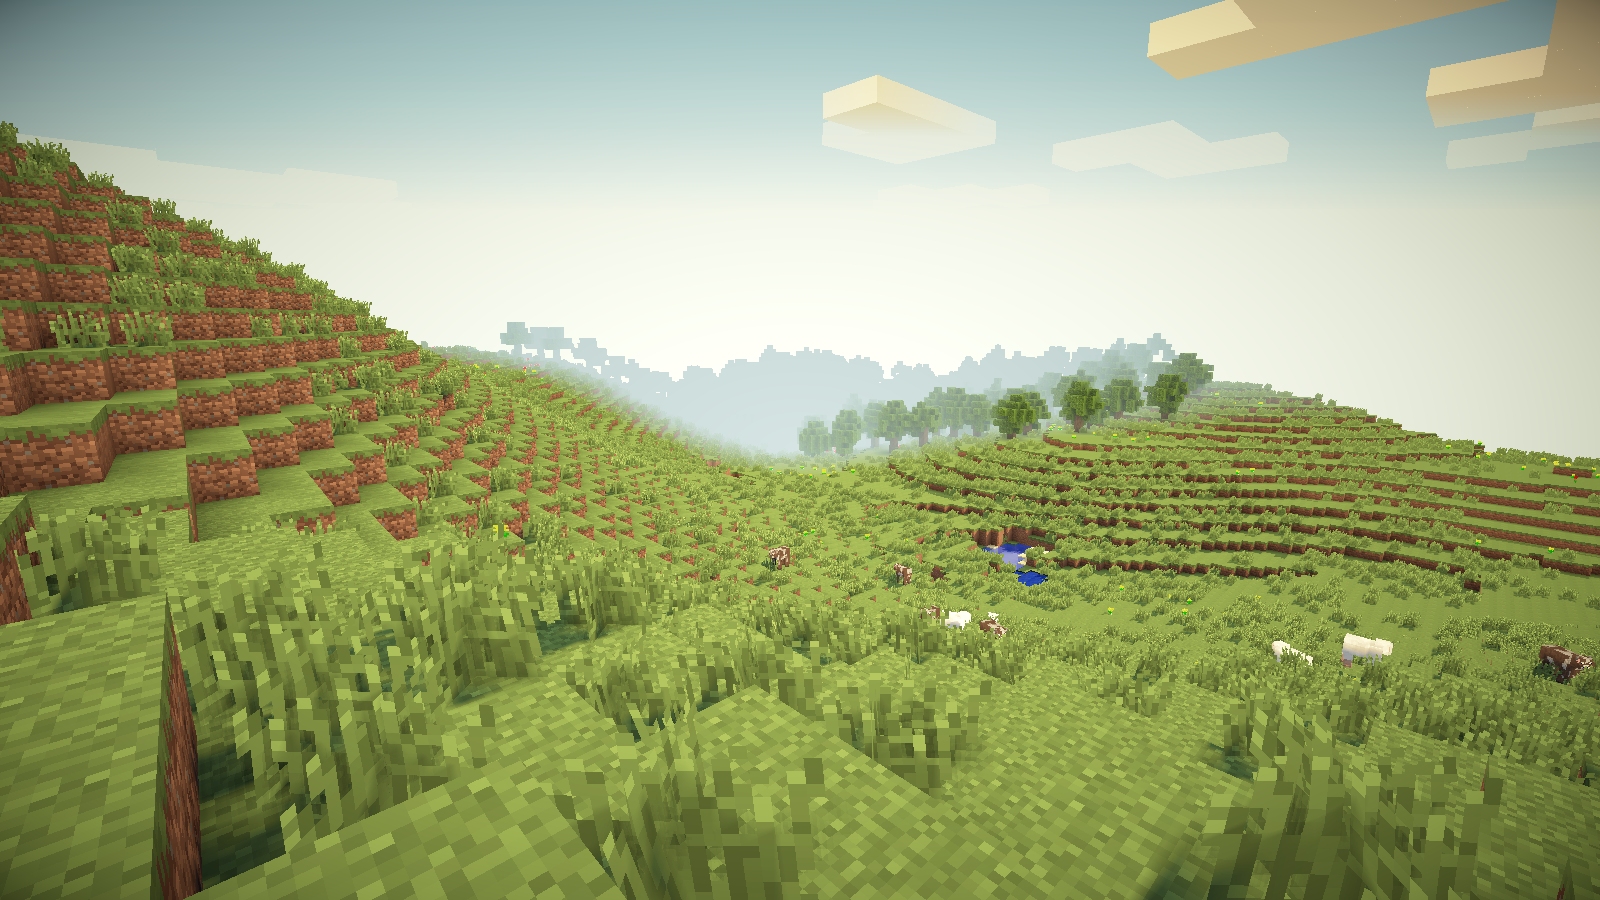 Wonderful Wallpaper Minecraft Scenery - minecraft__rolling_hills_by_syndicusx-d60gax3  Image_376542.png